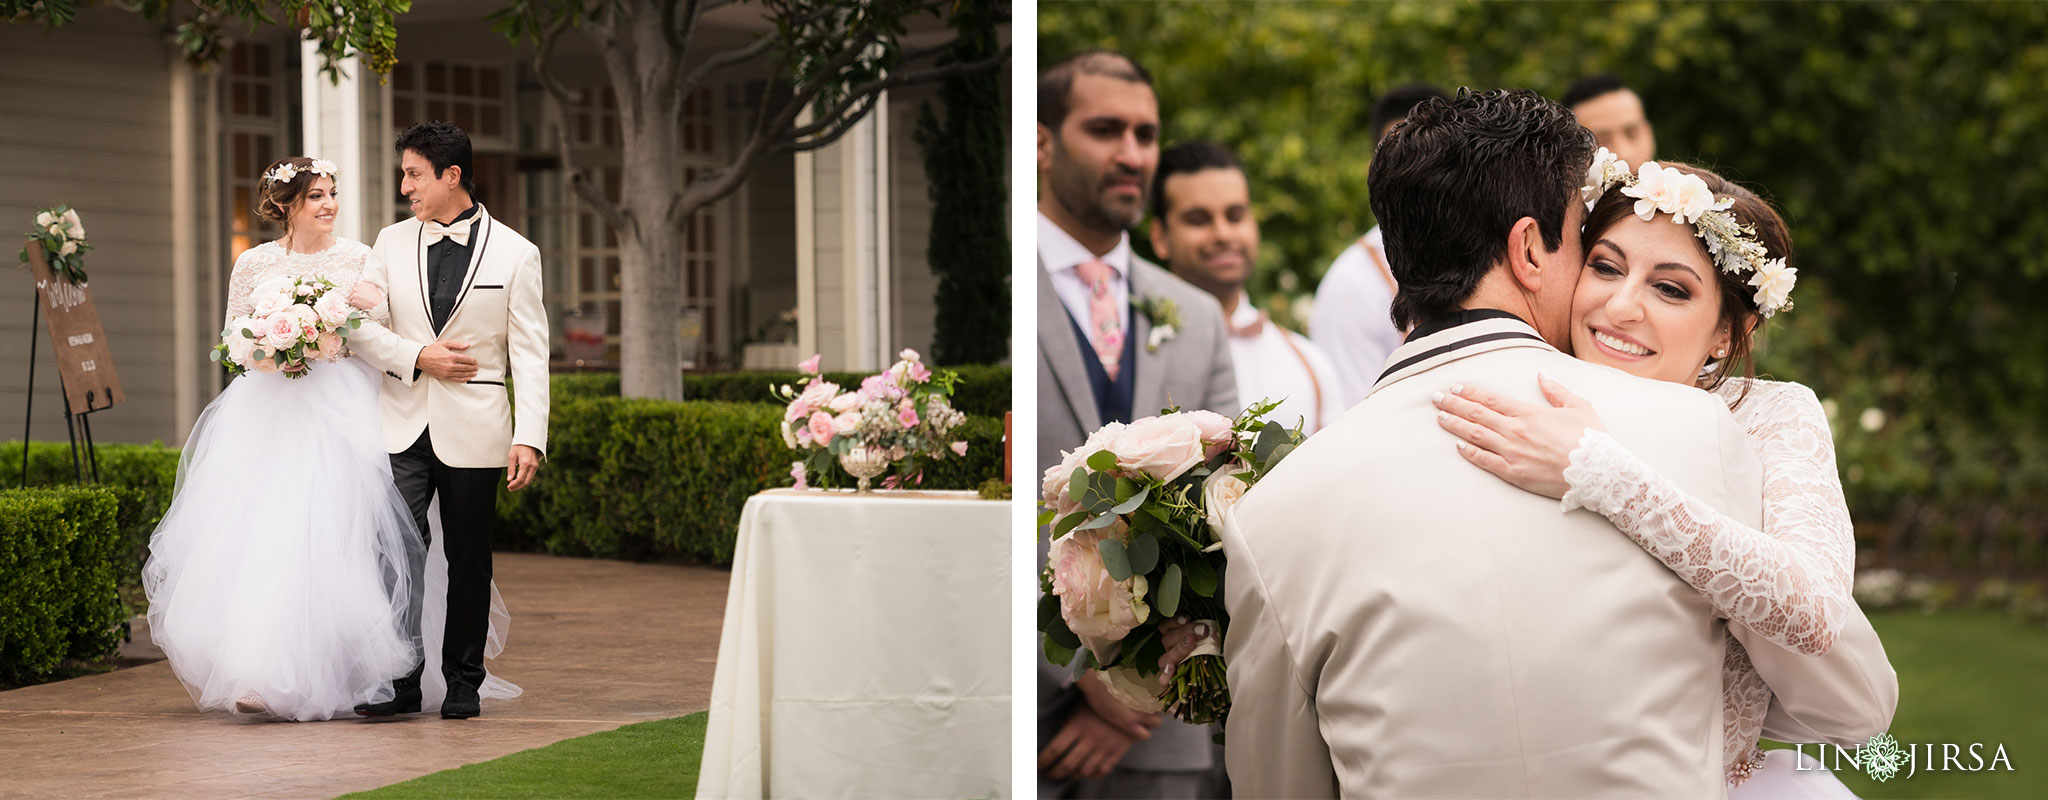 19 carmel mountain ranch san diego pakistani persian muslim wedding ceremony photography